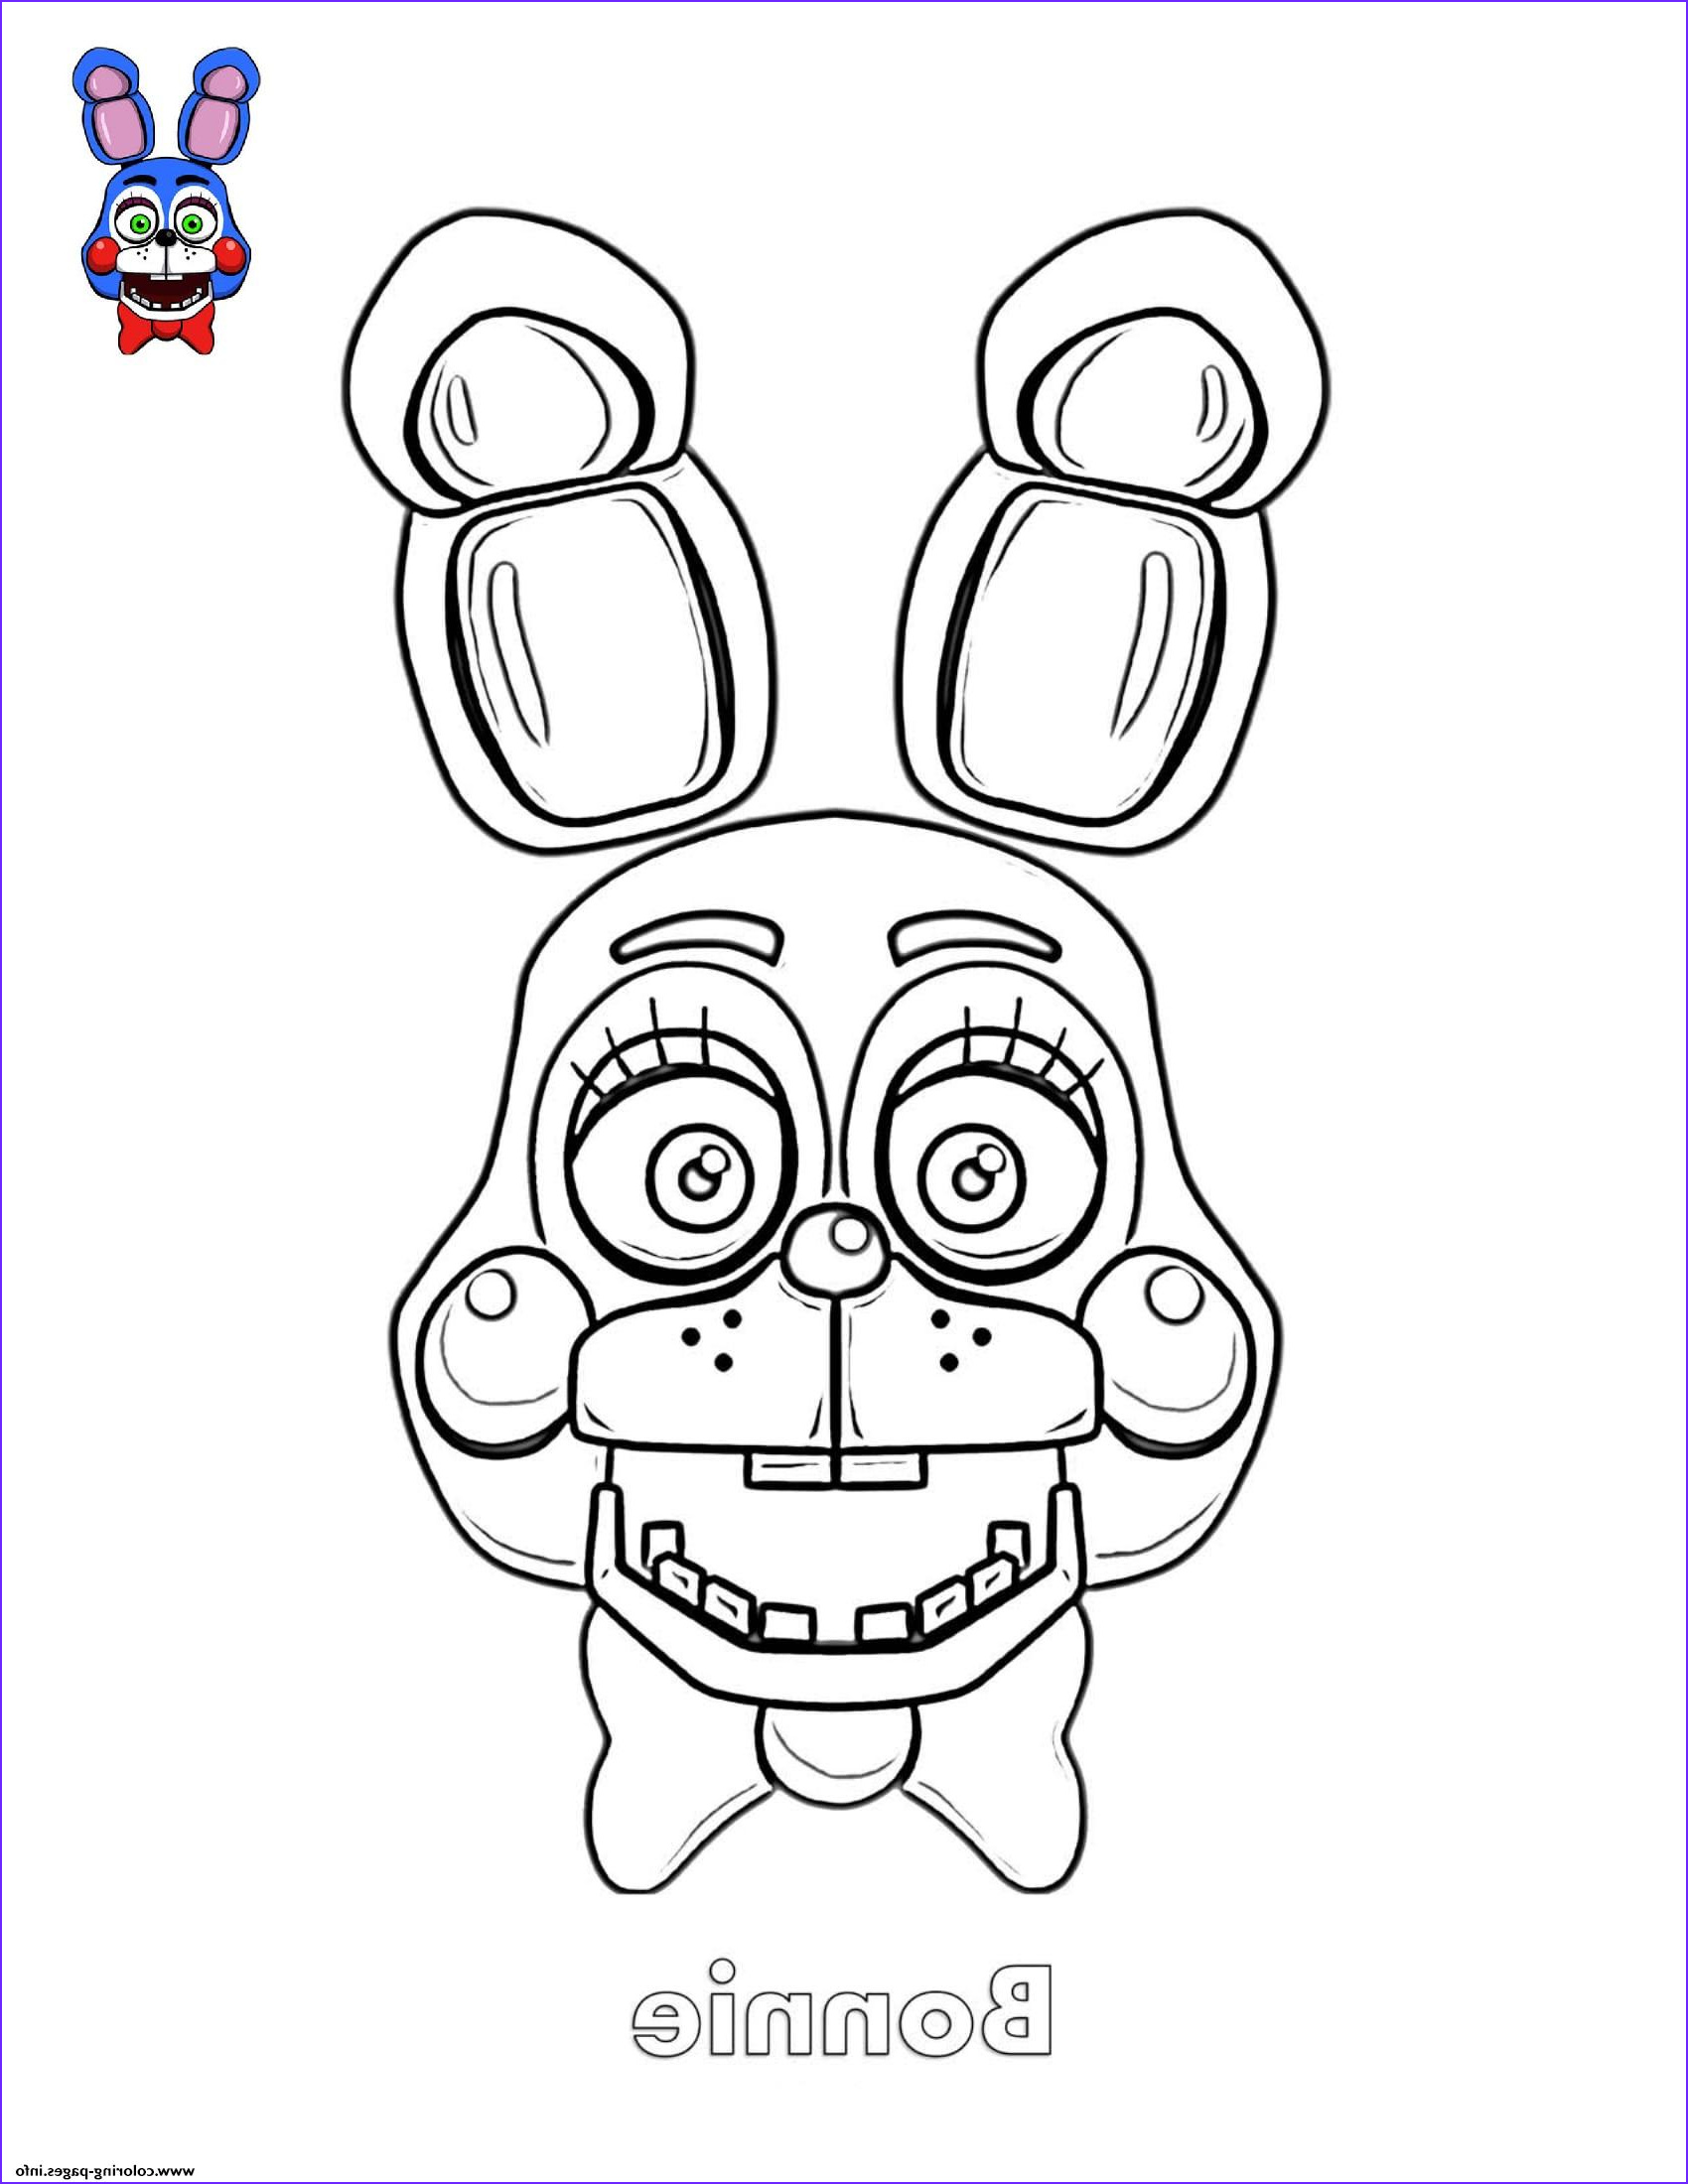 Bonnie Coloring Page Inspirational Image Bonnie Coloring Pages Nightmare Drawing Sketch Coloring Page